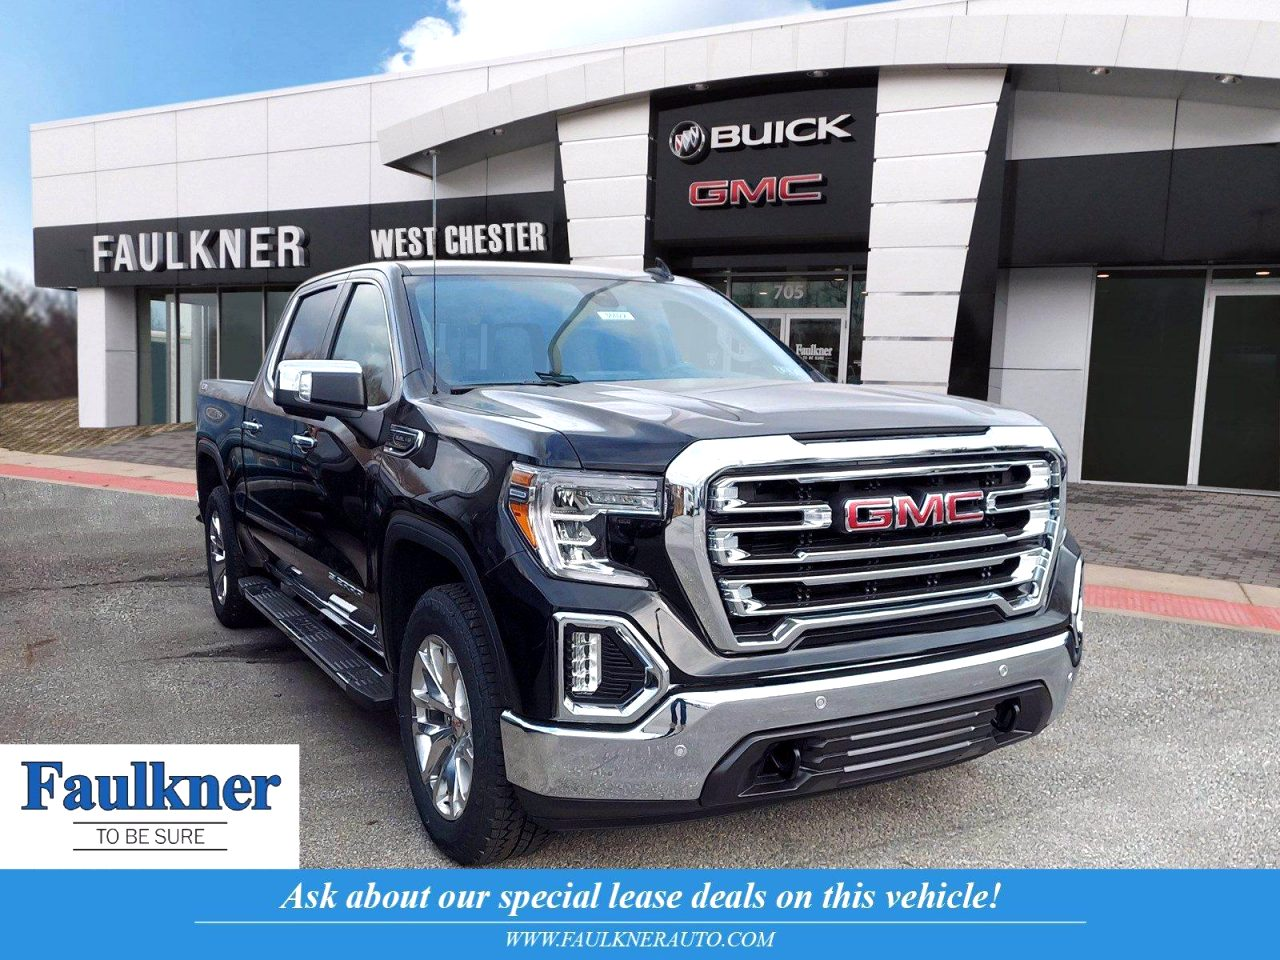 2021 GMC x31 for sale Model